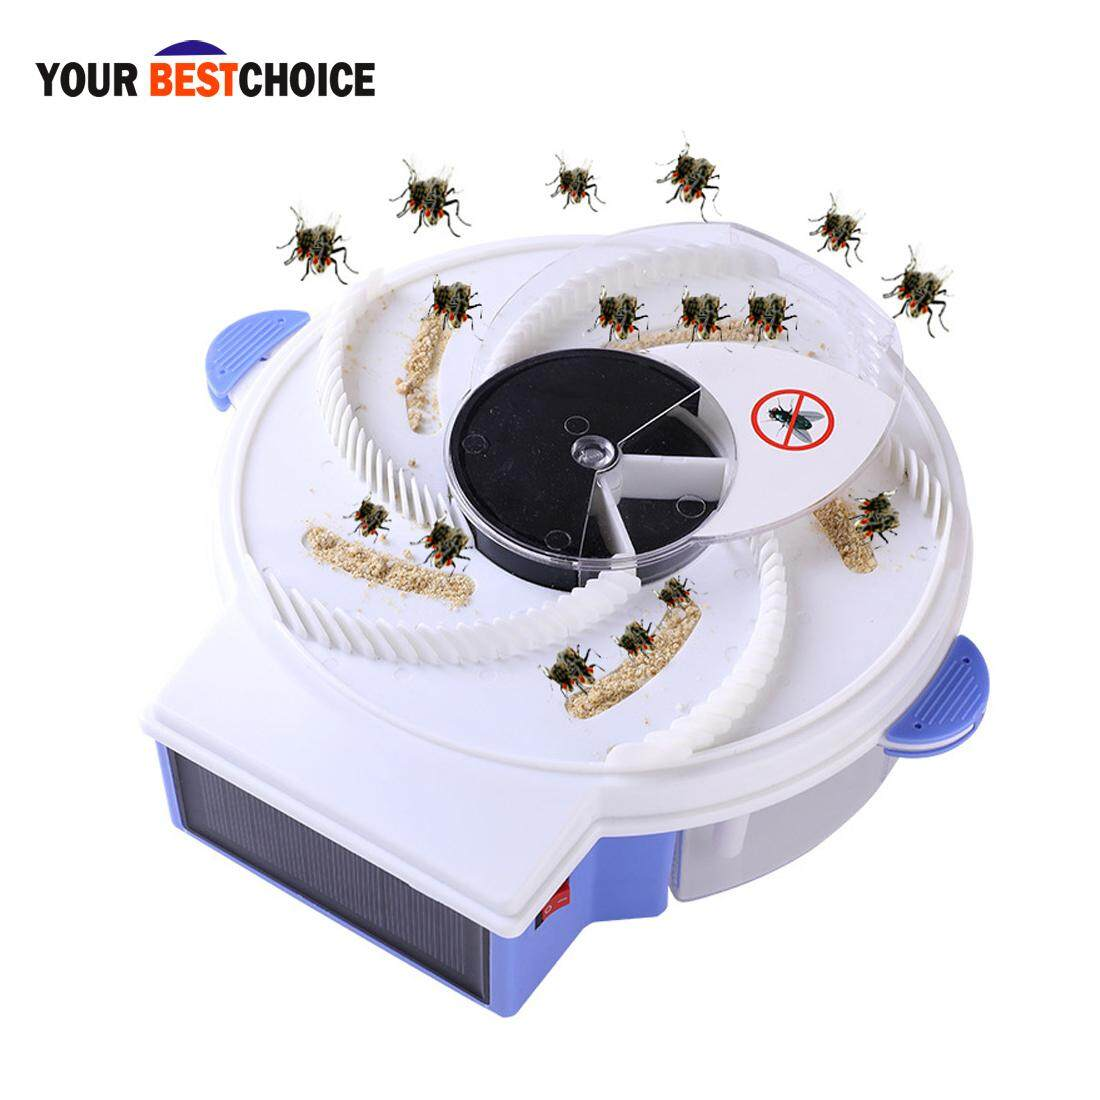 YBC Solar Energy Electric Fly Trap Device with Trapping Food Flycatcher Artifact Catcher